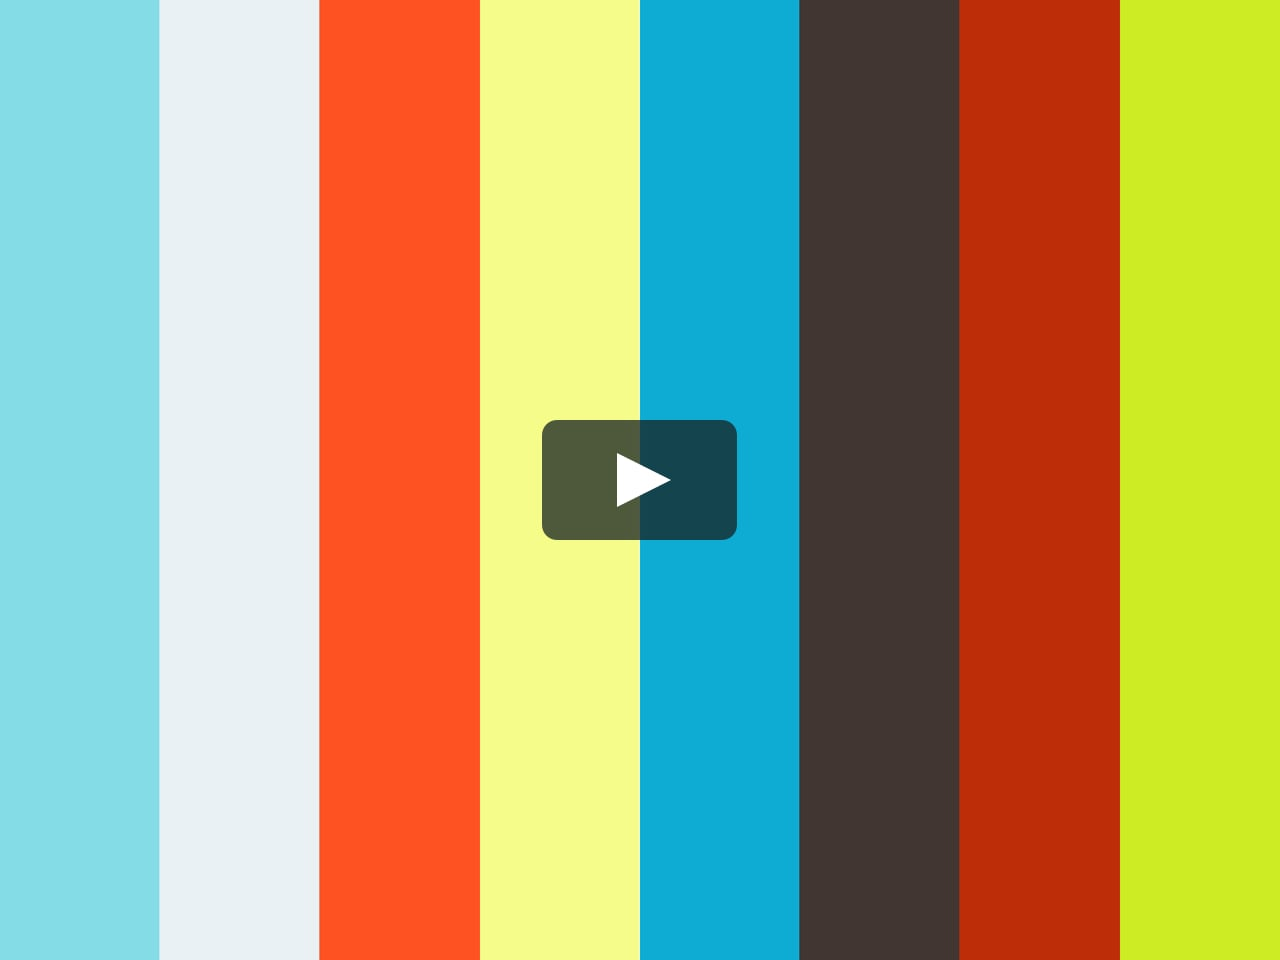 Making Angry Birds with Construct2 Part 2